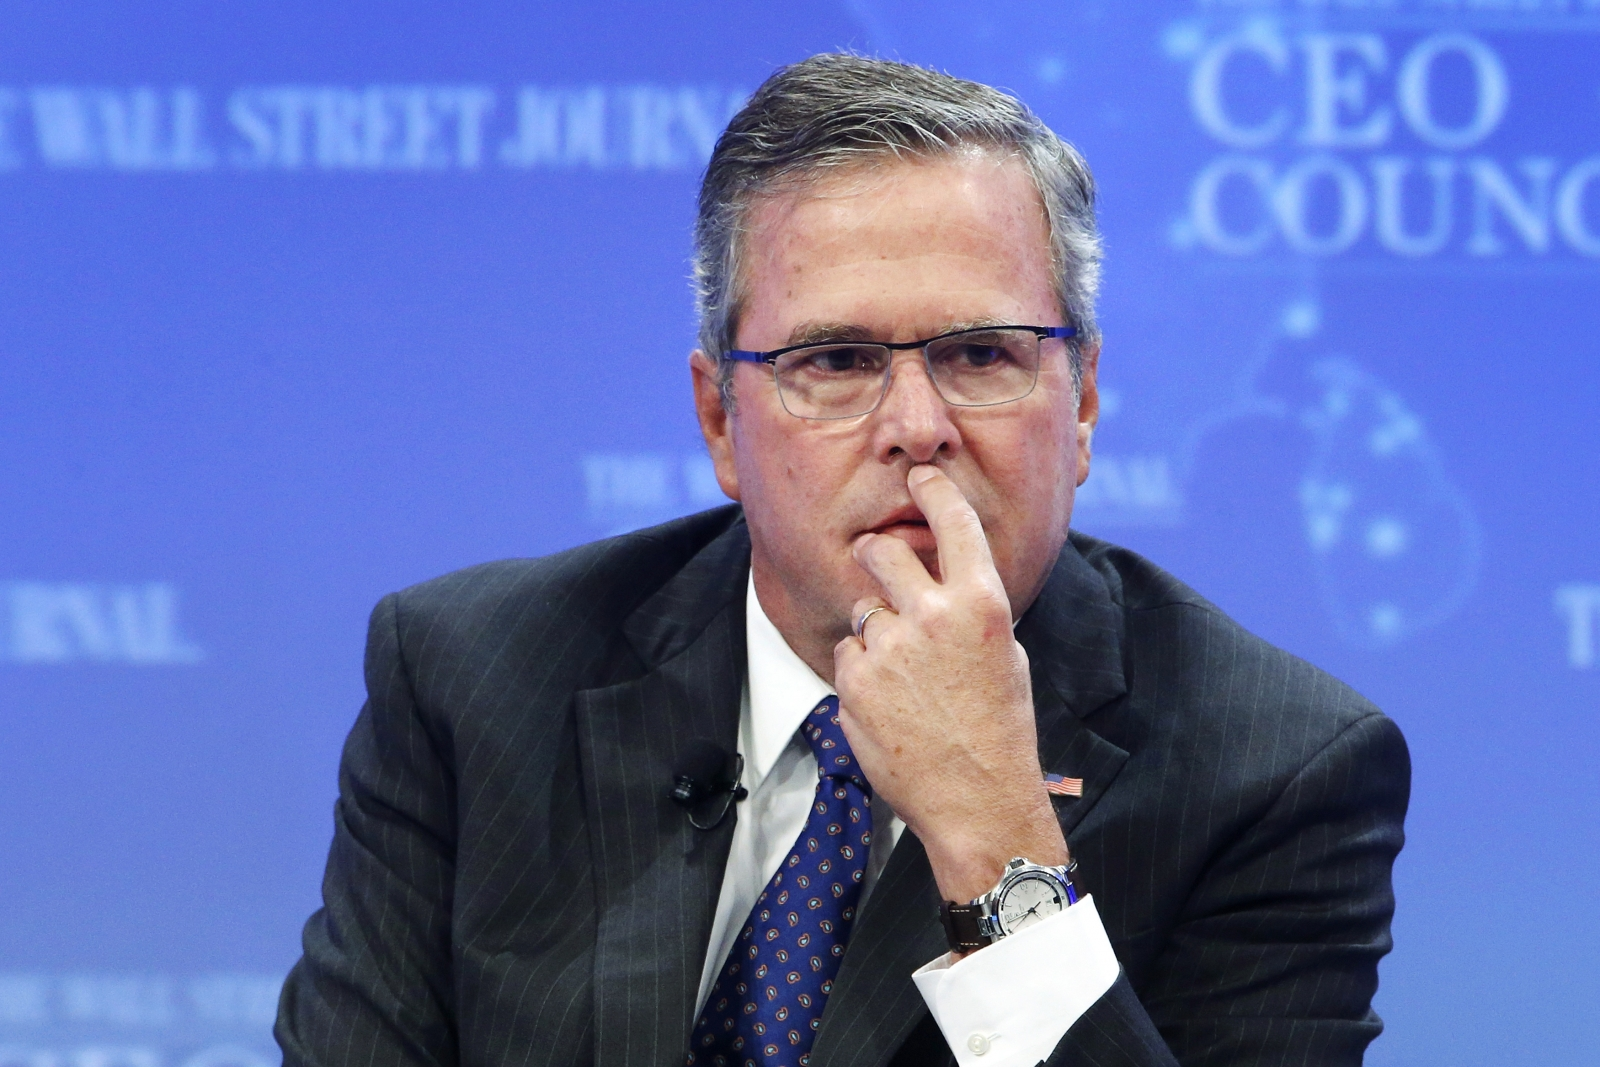 Jeb Bush, a former governor of Florida, has committed a serious privacy blunder by publishing almost 300,000 emails online,